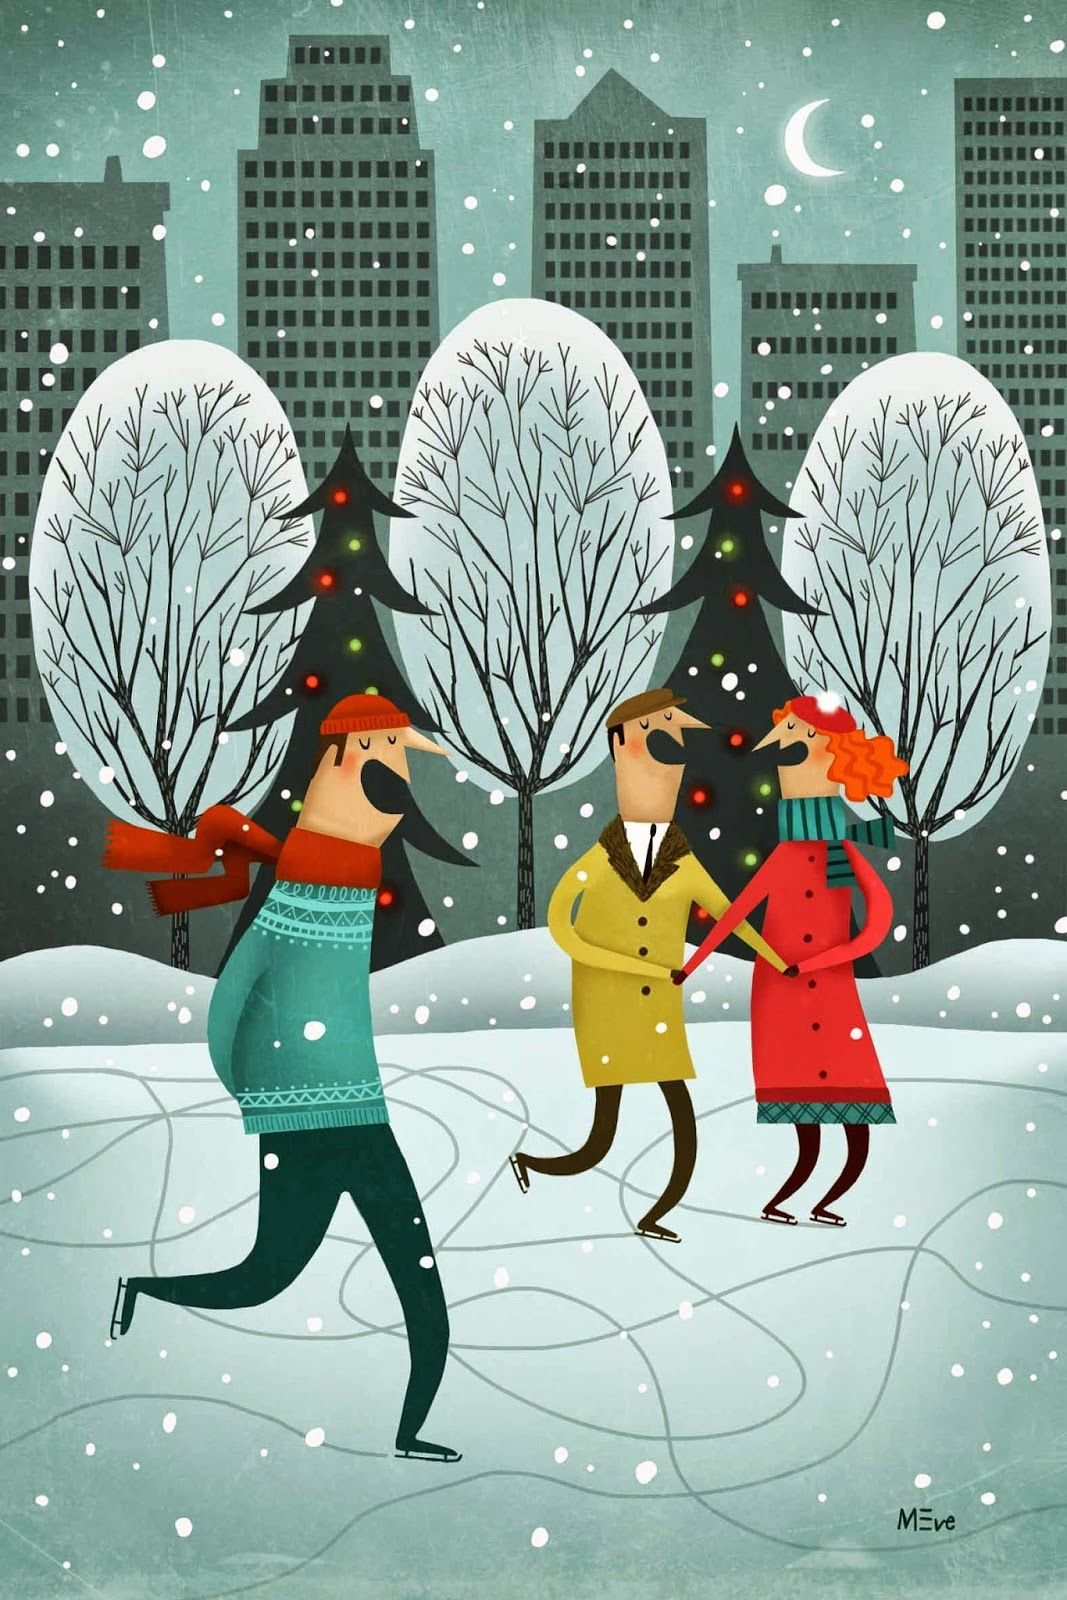 Fuidelfui Illustration Marie Eve Tremblay | Christmas illustration